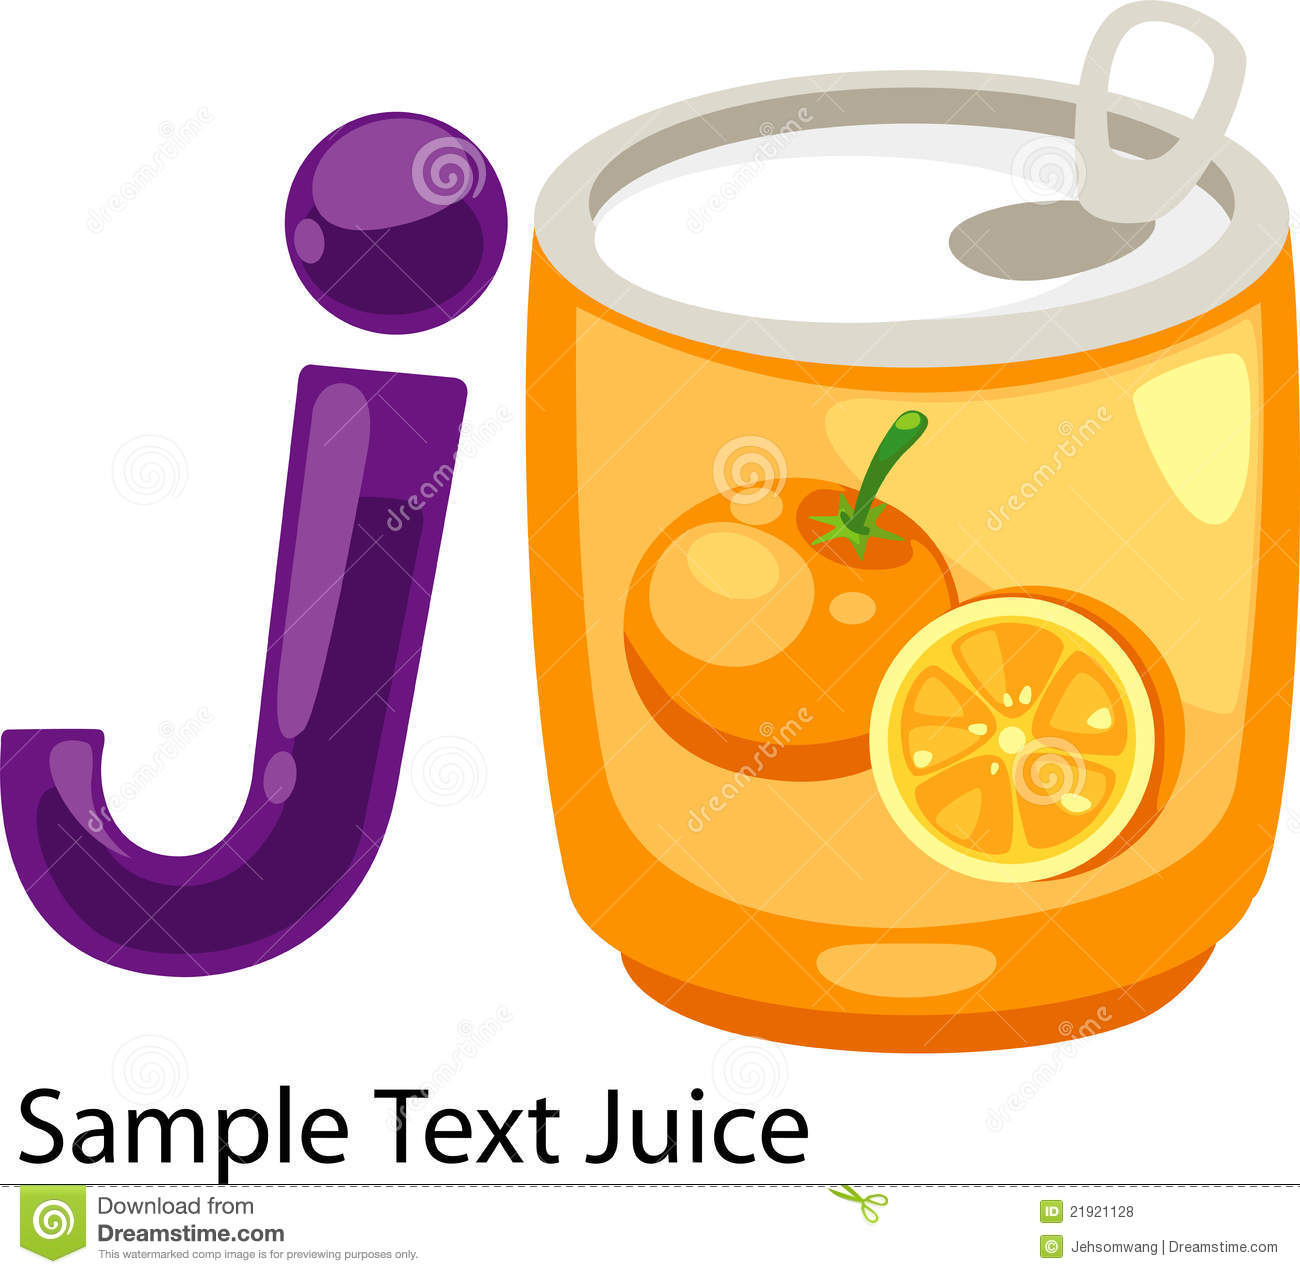 Stock Illustration Cartoon Blueberry Character Fruit Face Hands Isolated White Background Image50580084 likewise Fruit juice together with Pineapple Transparent   Clip Art Image further Stock Illustration Lemon Squeezer Citrus Plastic Citrus Juicer Half Juice Preparation Image45343622 in addition Stock Illustration Smoothie Text Decorative Lettering Type Design Word Image53489872. on cartoon fruit juice